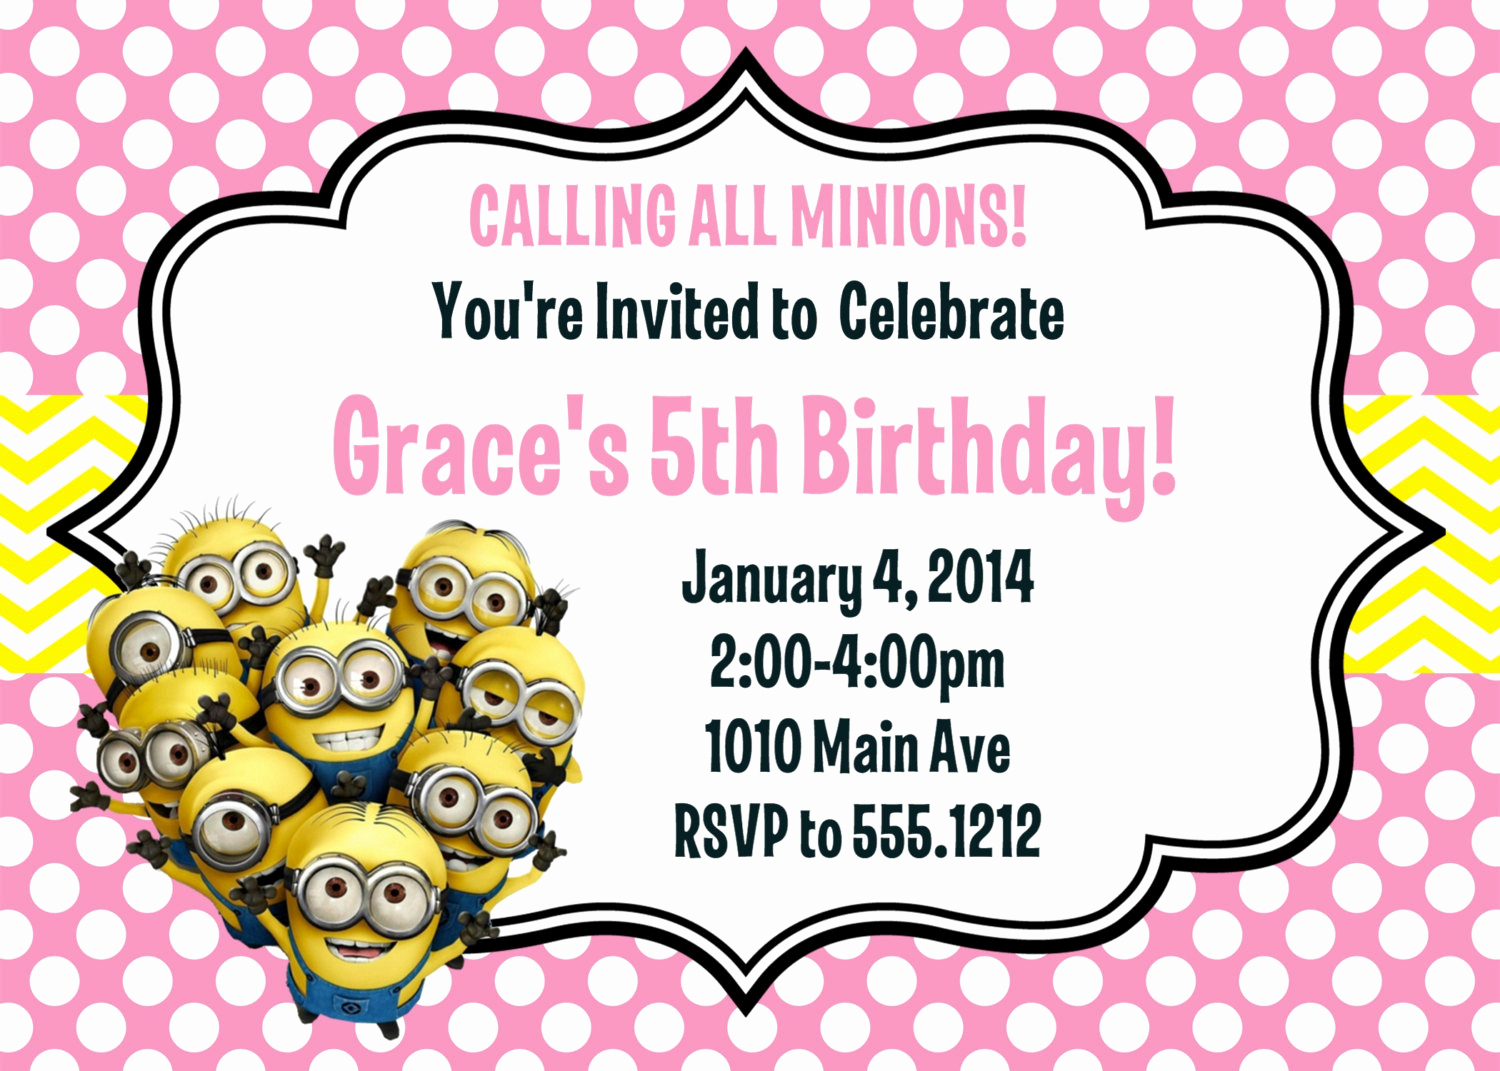 Minion Birthday Party Invitation Best Of Minion Birthday Party Invitation Printable 4x6 or 5x7